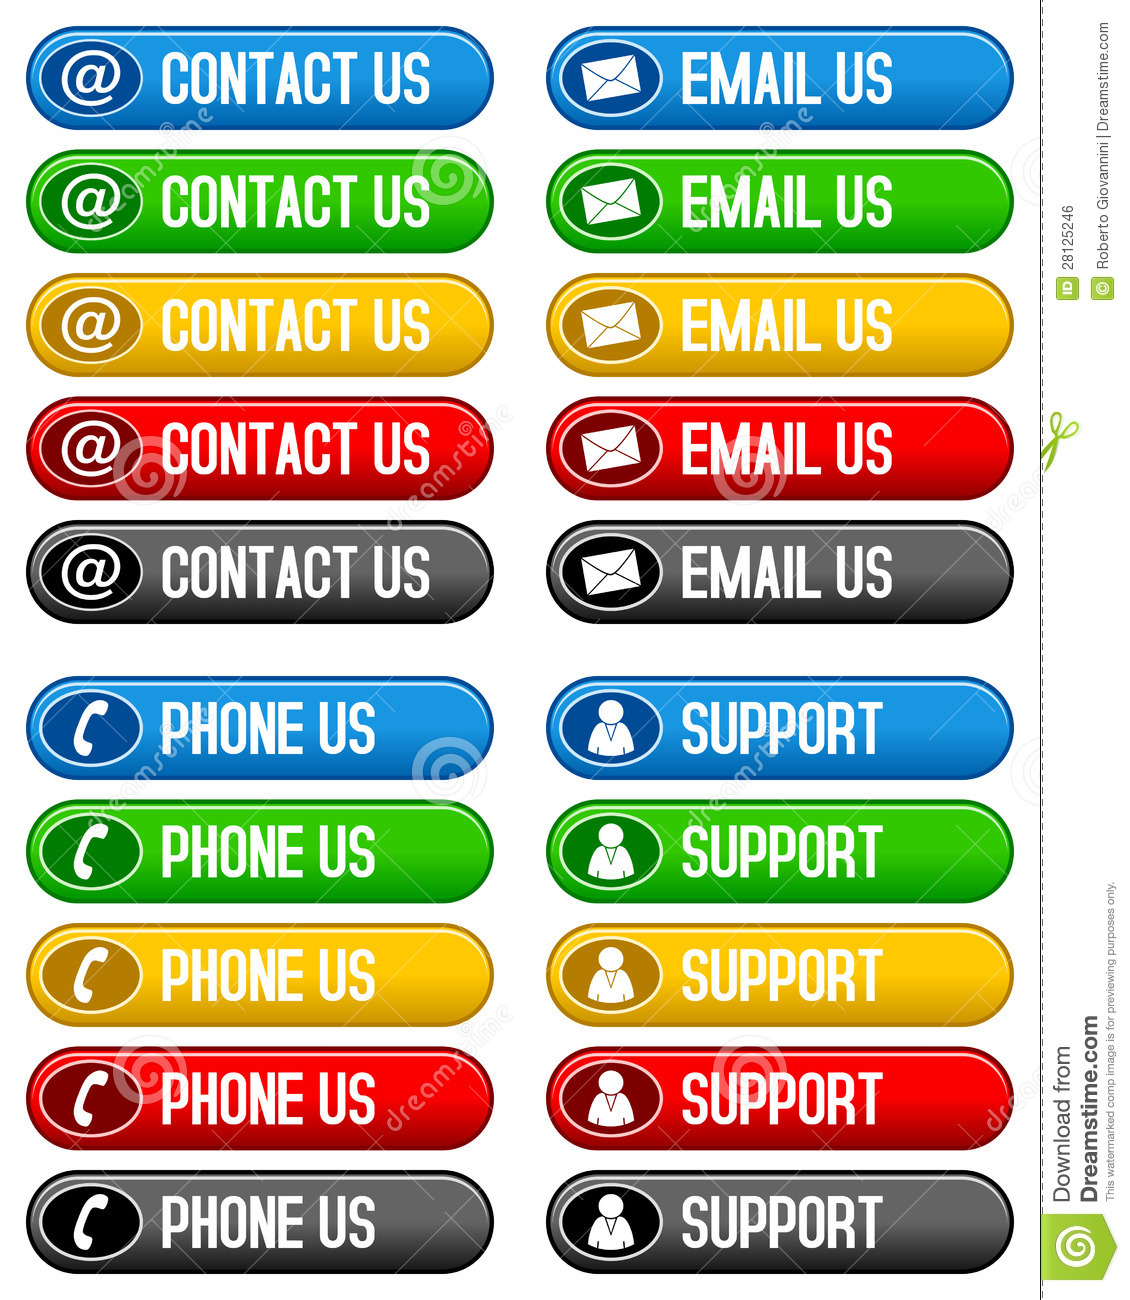 Contact Email Phone Us Buttons Royalty Free Stock Image - Image ...